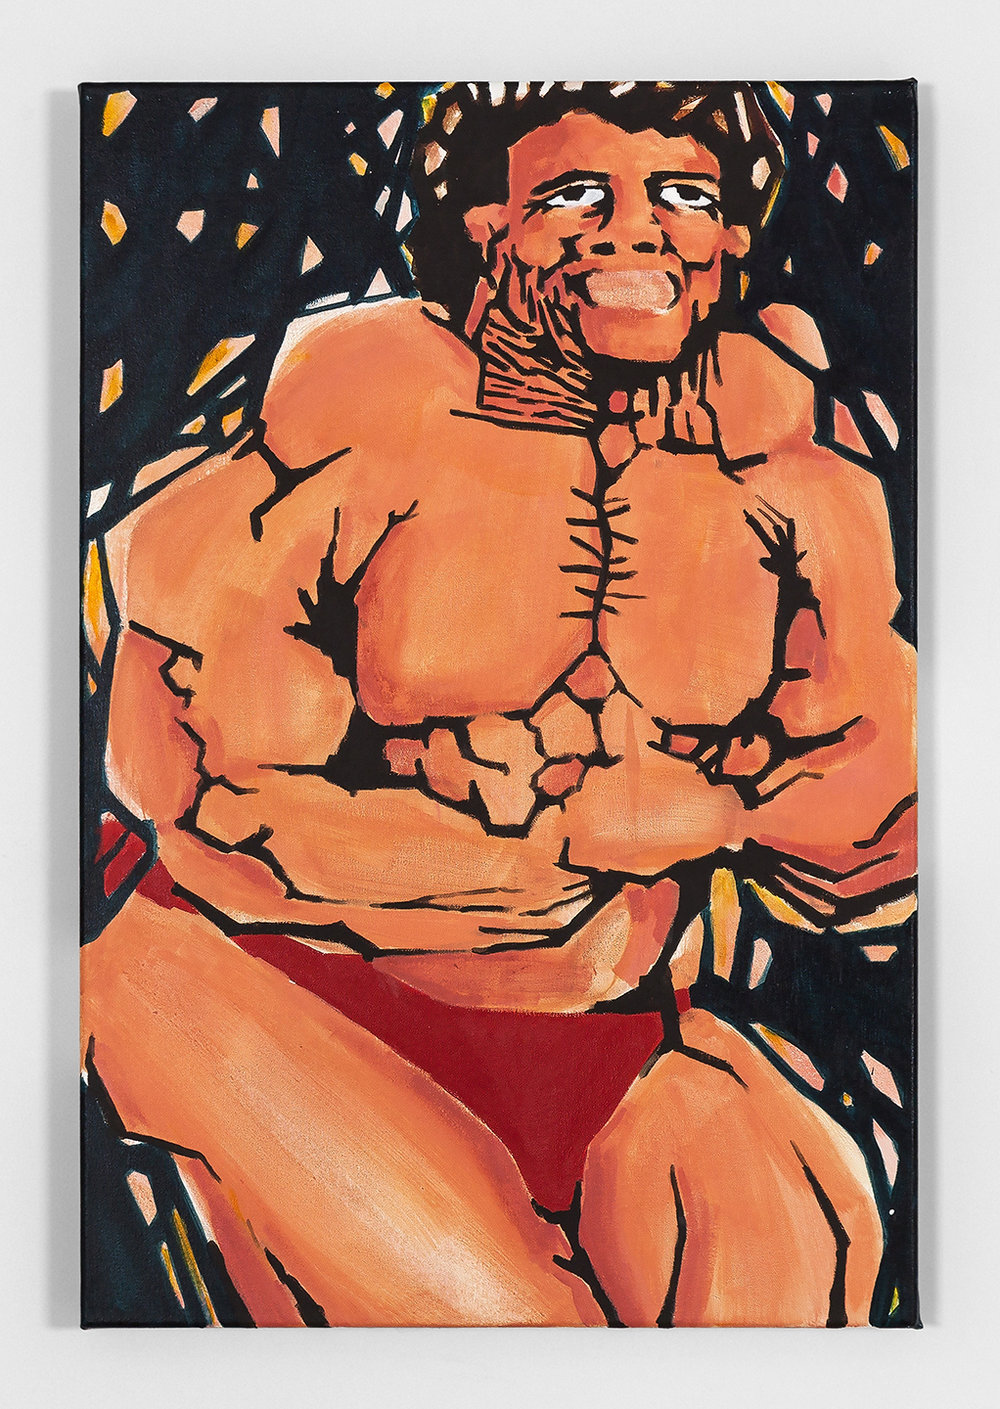 Koichi Sato Basic Muscle Pose 3, 2016 Acrylic on canvas 36h x 24w in 91.44h x 60.96w cm KS023